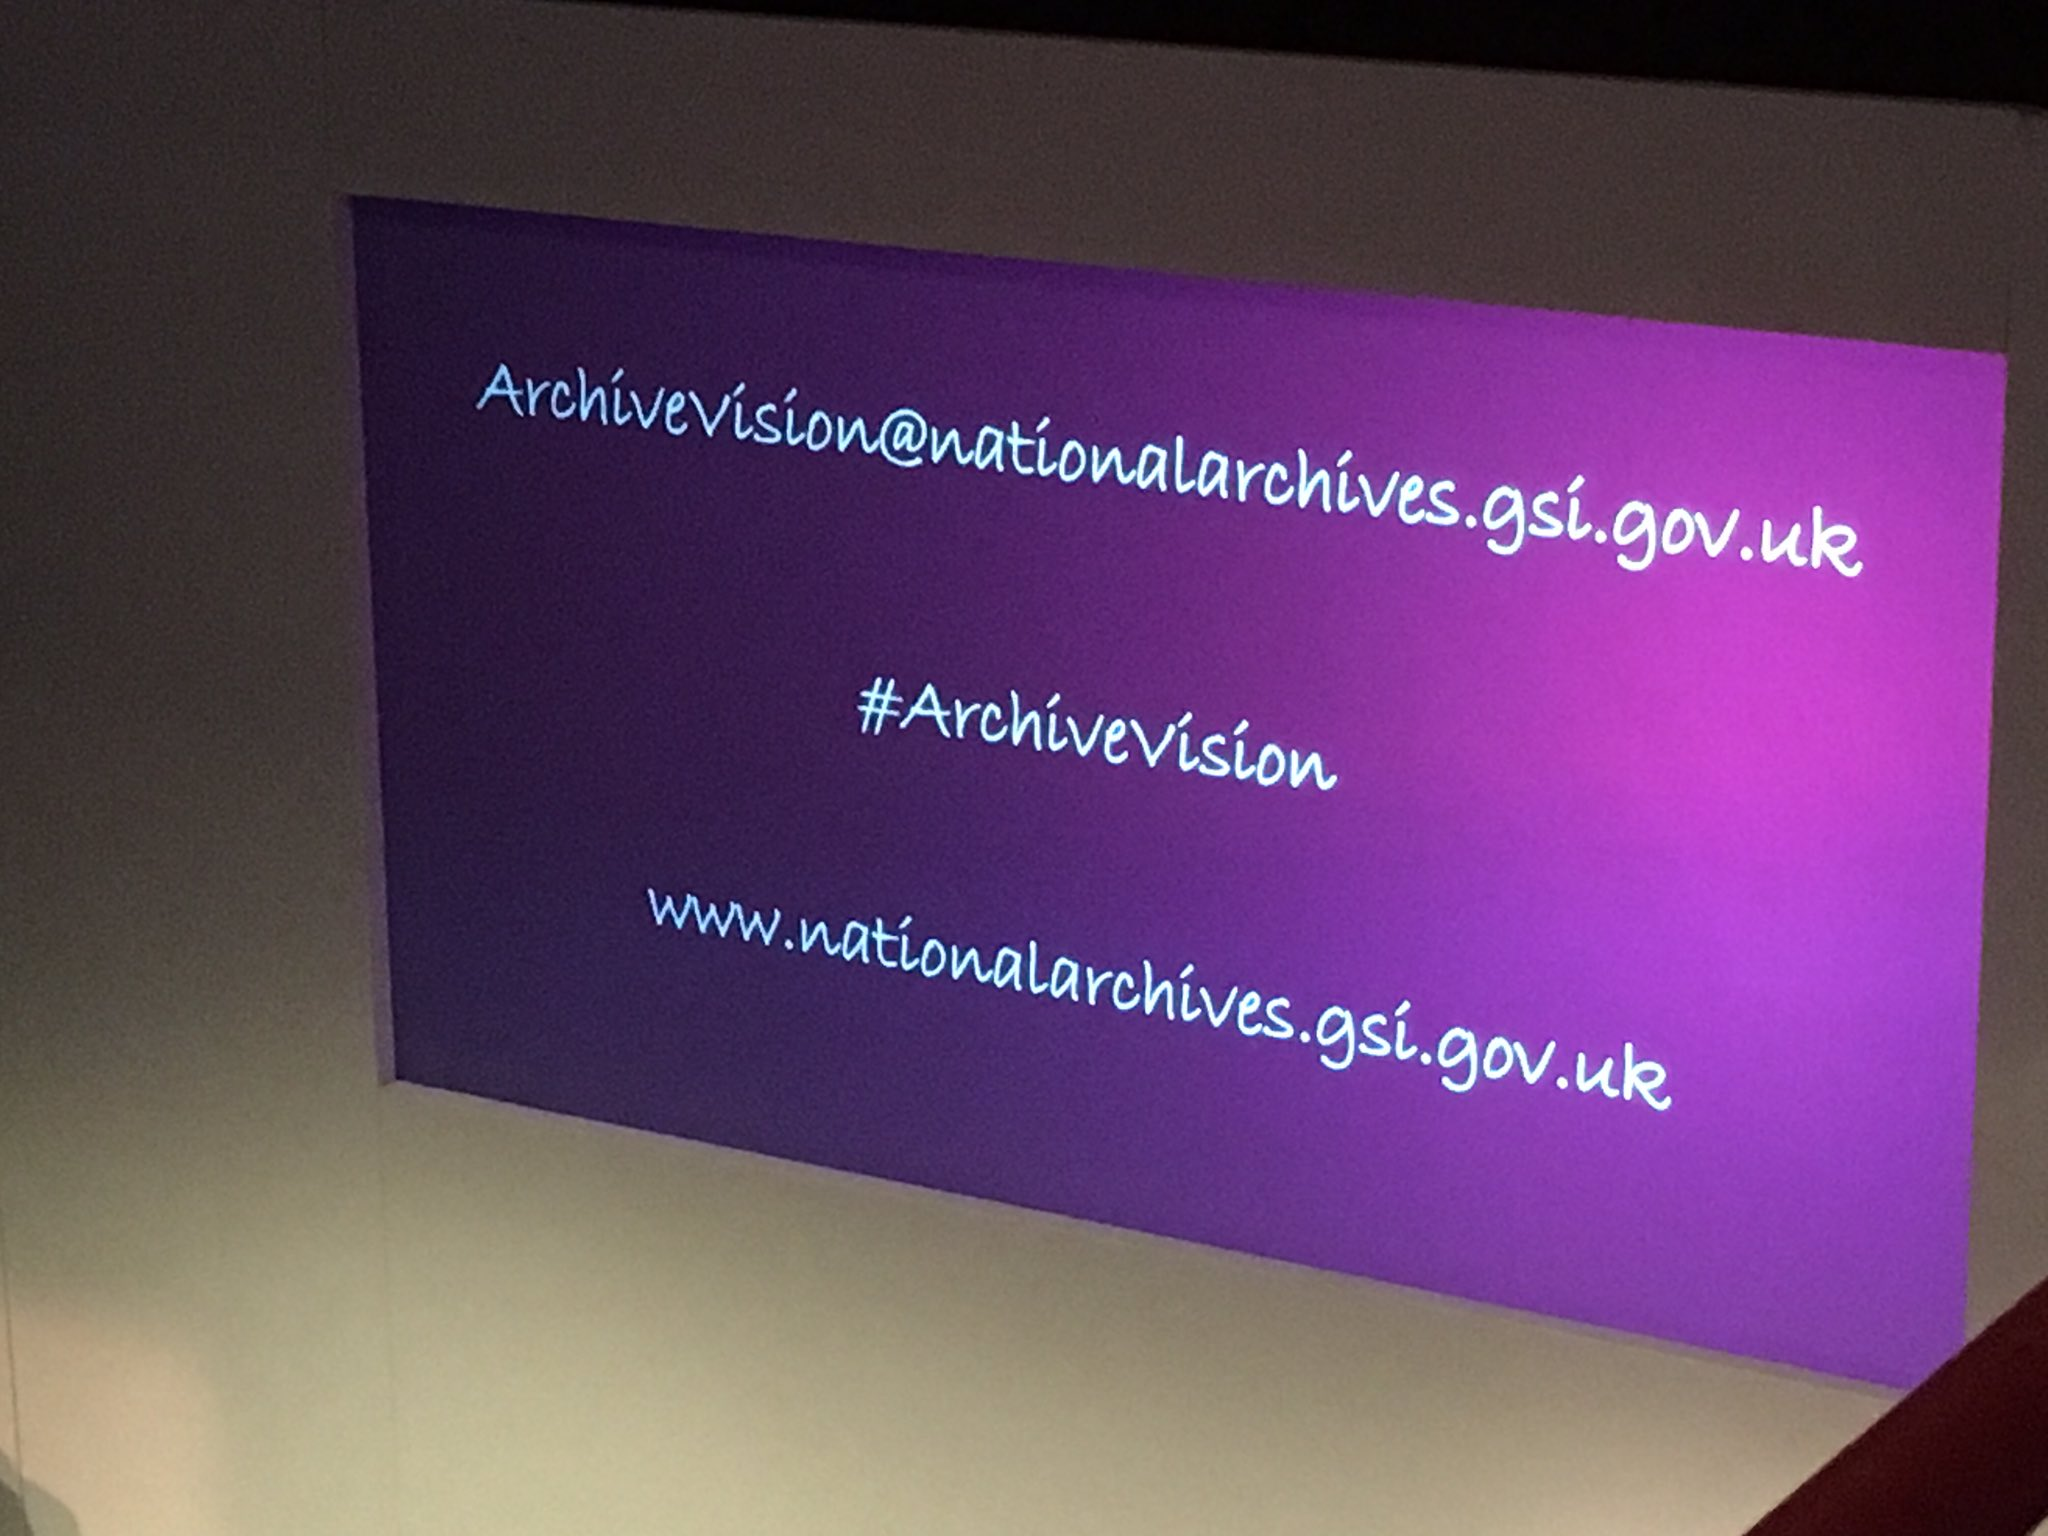 Find out more about #Archivevision! (Try not to get distracted by the font choice.) #DCDC16 https://t.co/qy3W0YwbhS